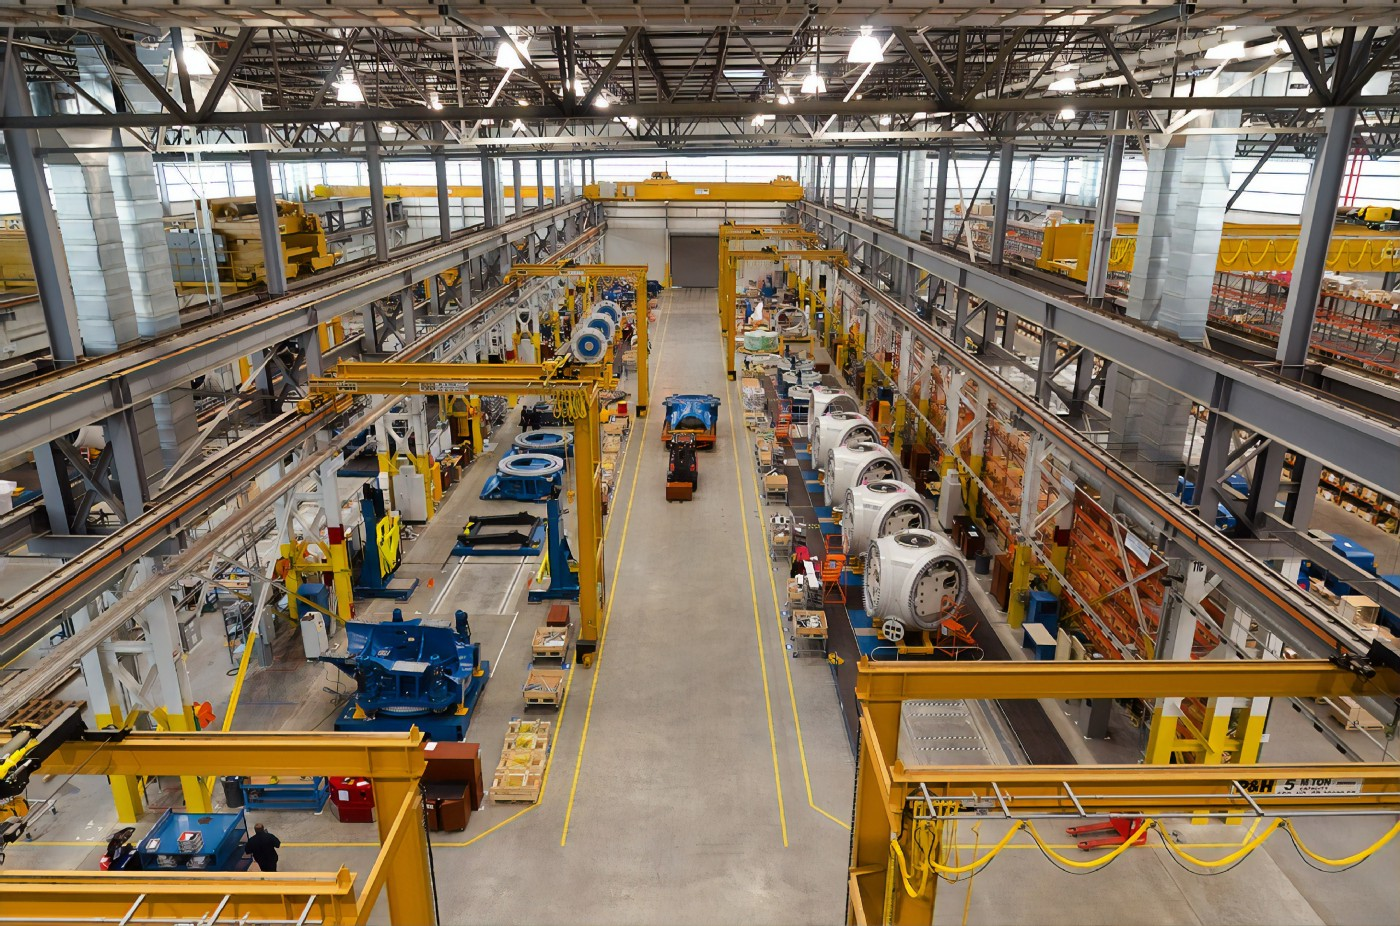 A wind turbine assembly line, making extensive use of automation. Photo by Science in HD on Unsplash